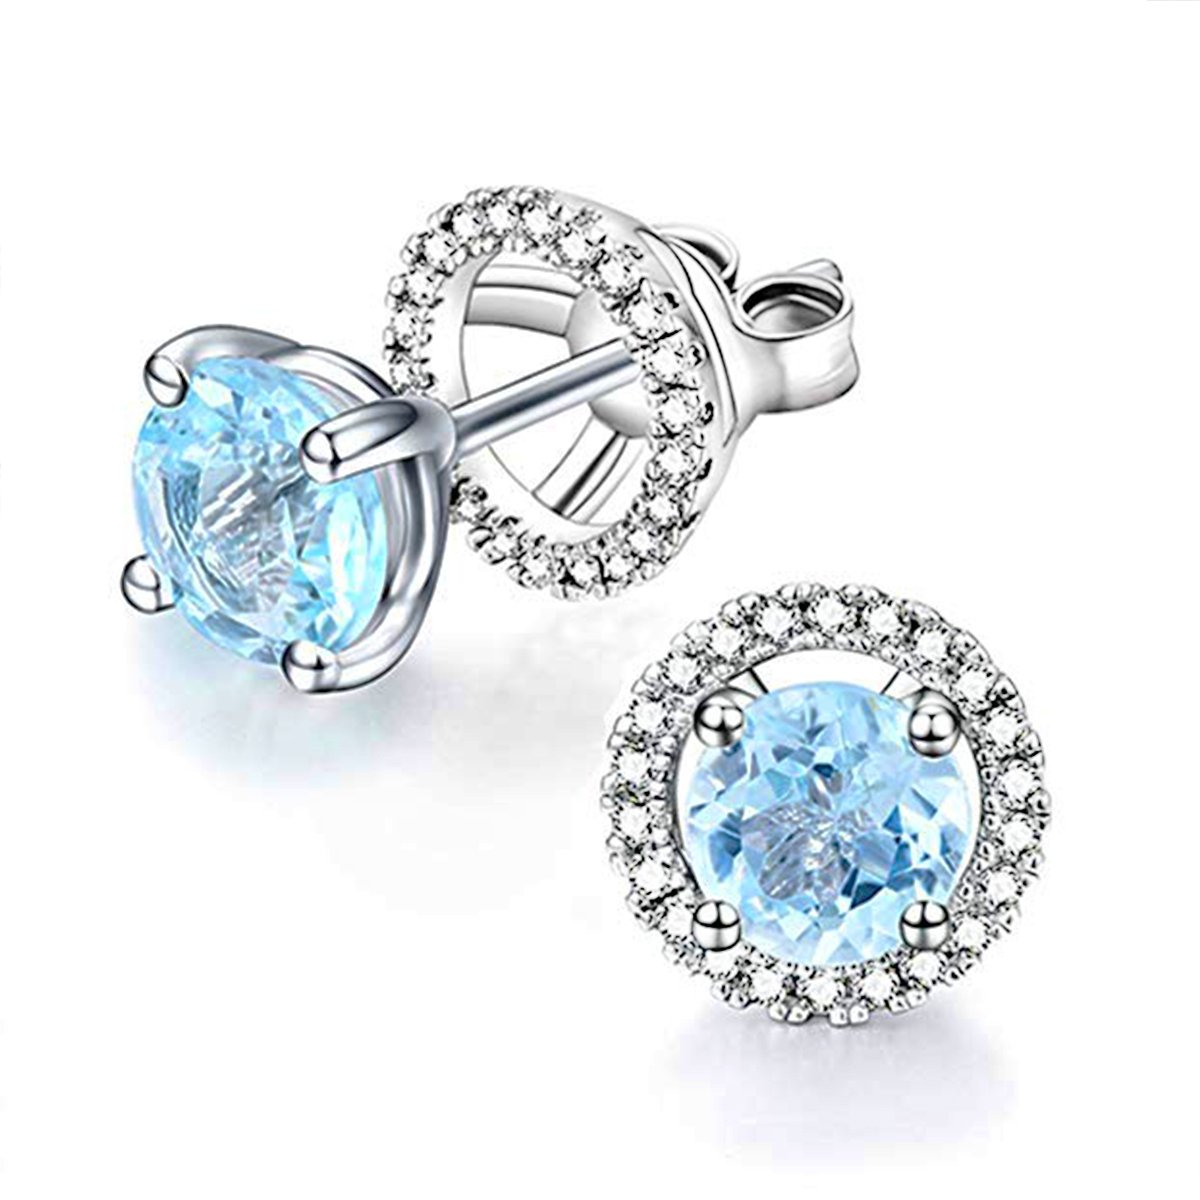 925 Silver November Birthstone Blue Topaz Removable Earrings CZ Halo Jacket Studs for Girls Women Hypoallergenic by EL UNO